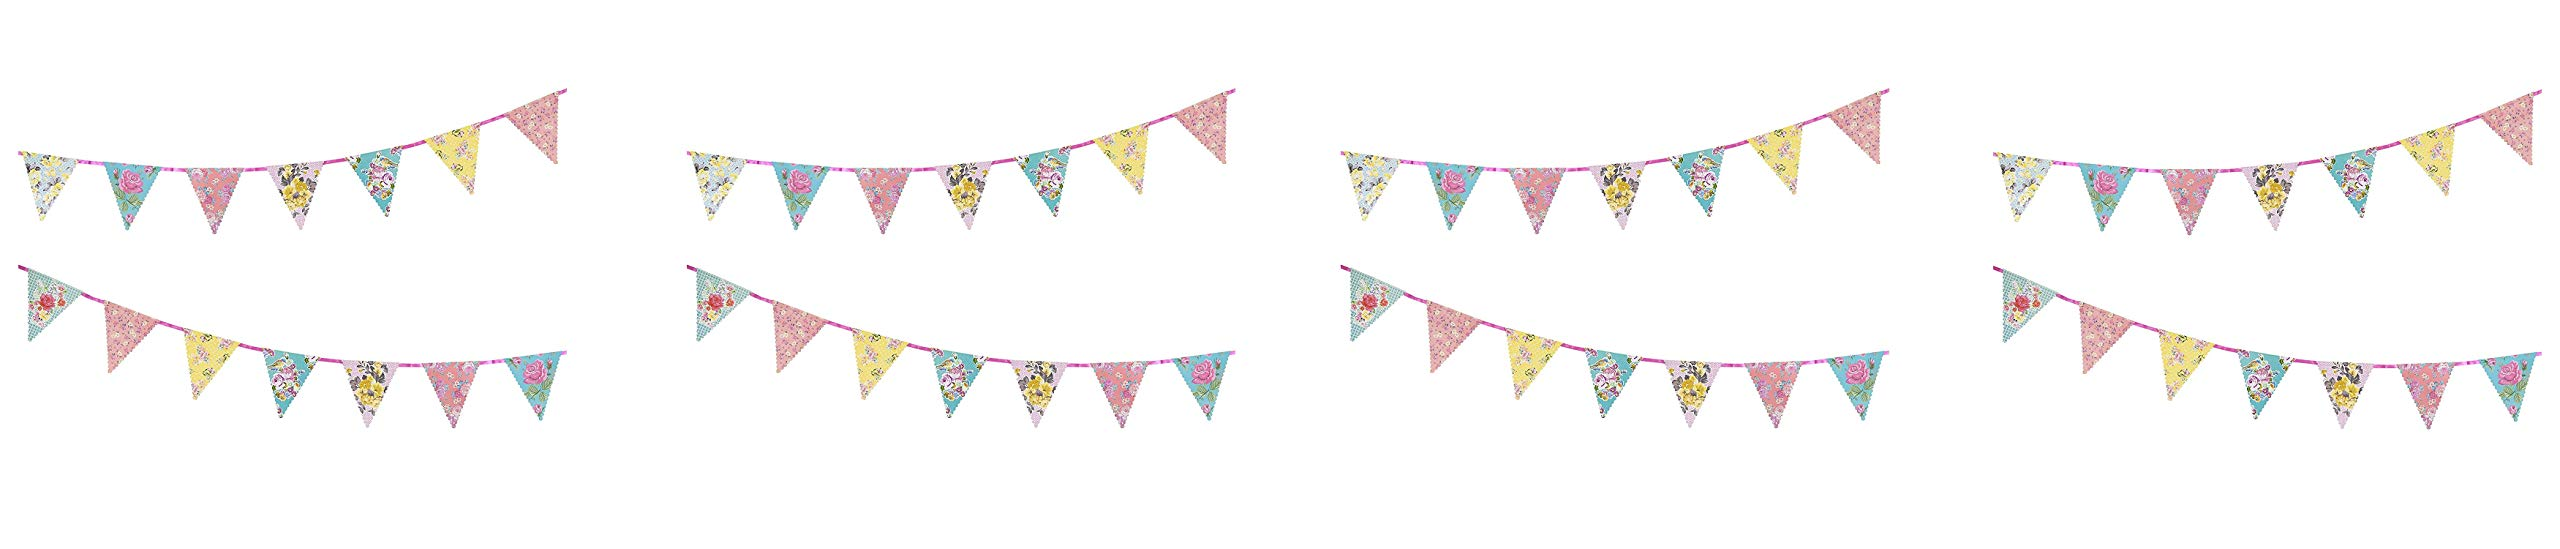 Talking Tables Tea Party Decorations Floral Banner Bunting | Truly Scrumptious | Also Great for Birthday Party, Baby Shower, Wedding and Anniversary | Paper, 4M - TS4-BUNTING (Fоur Paсk)